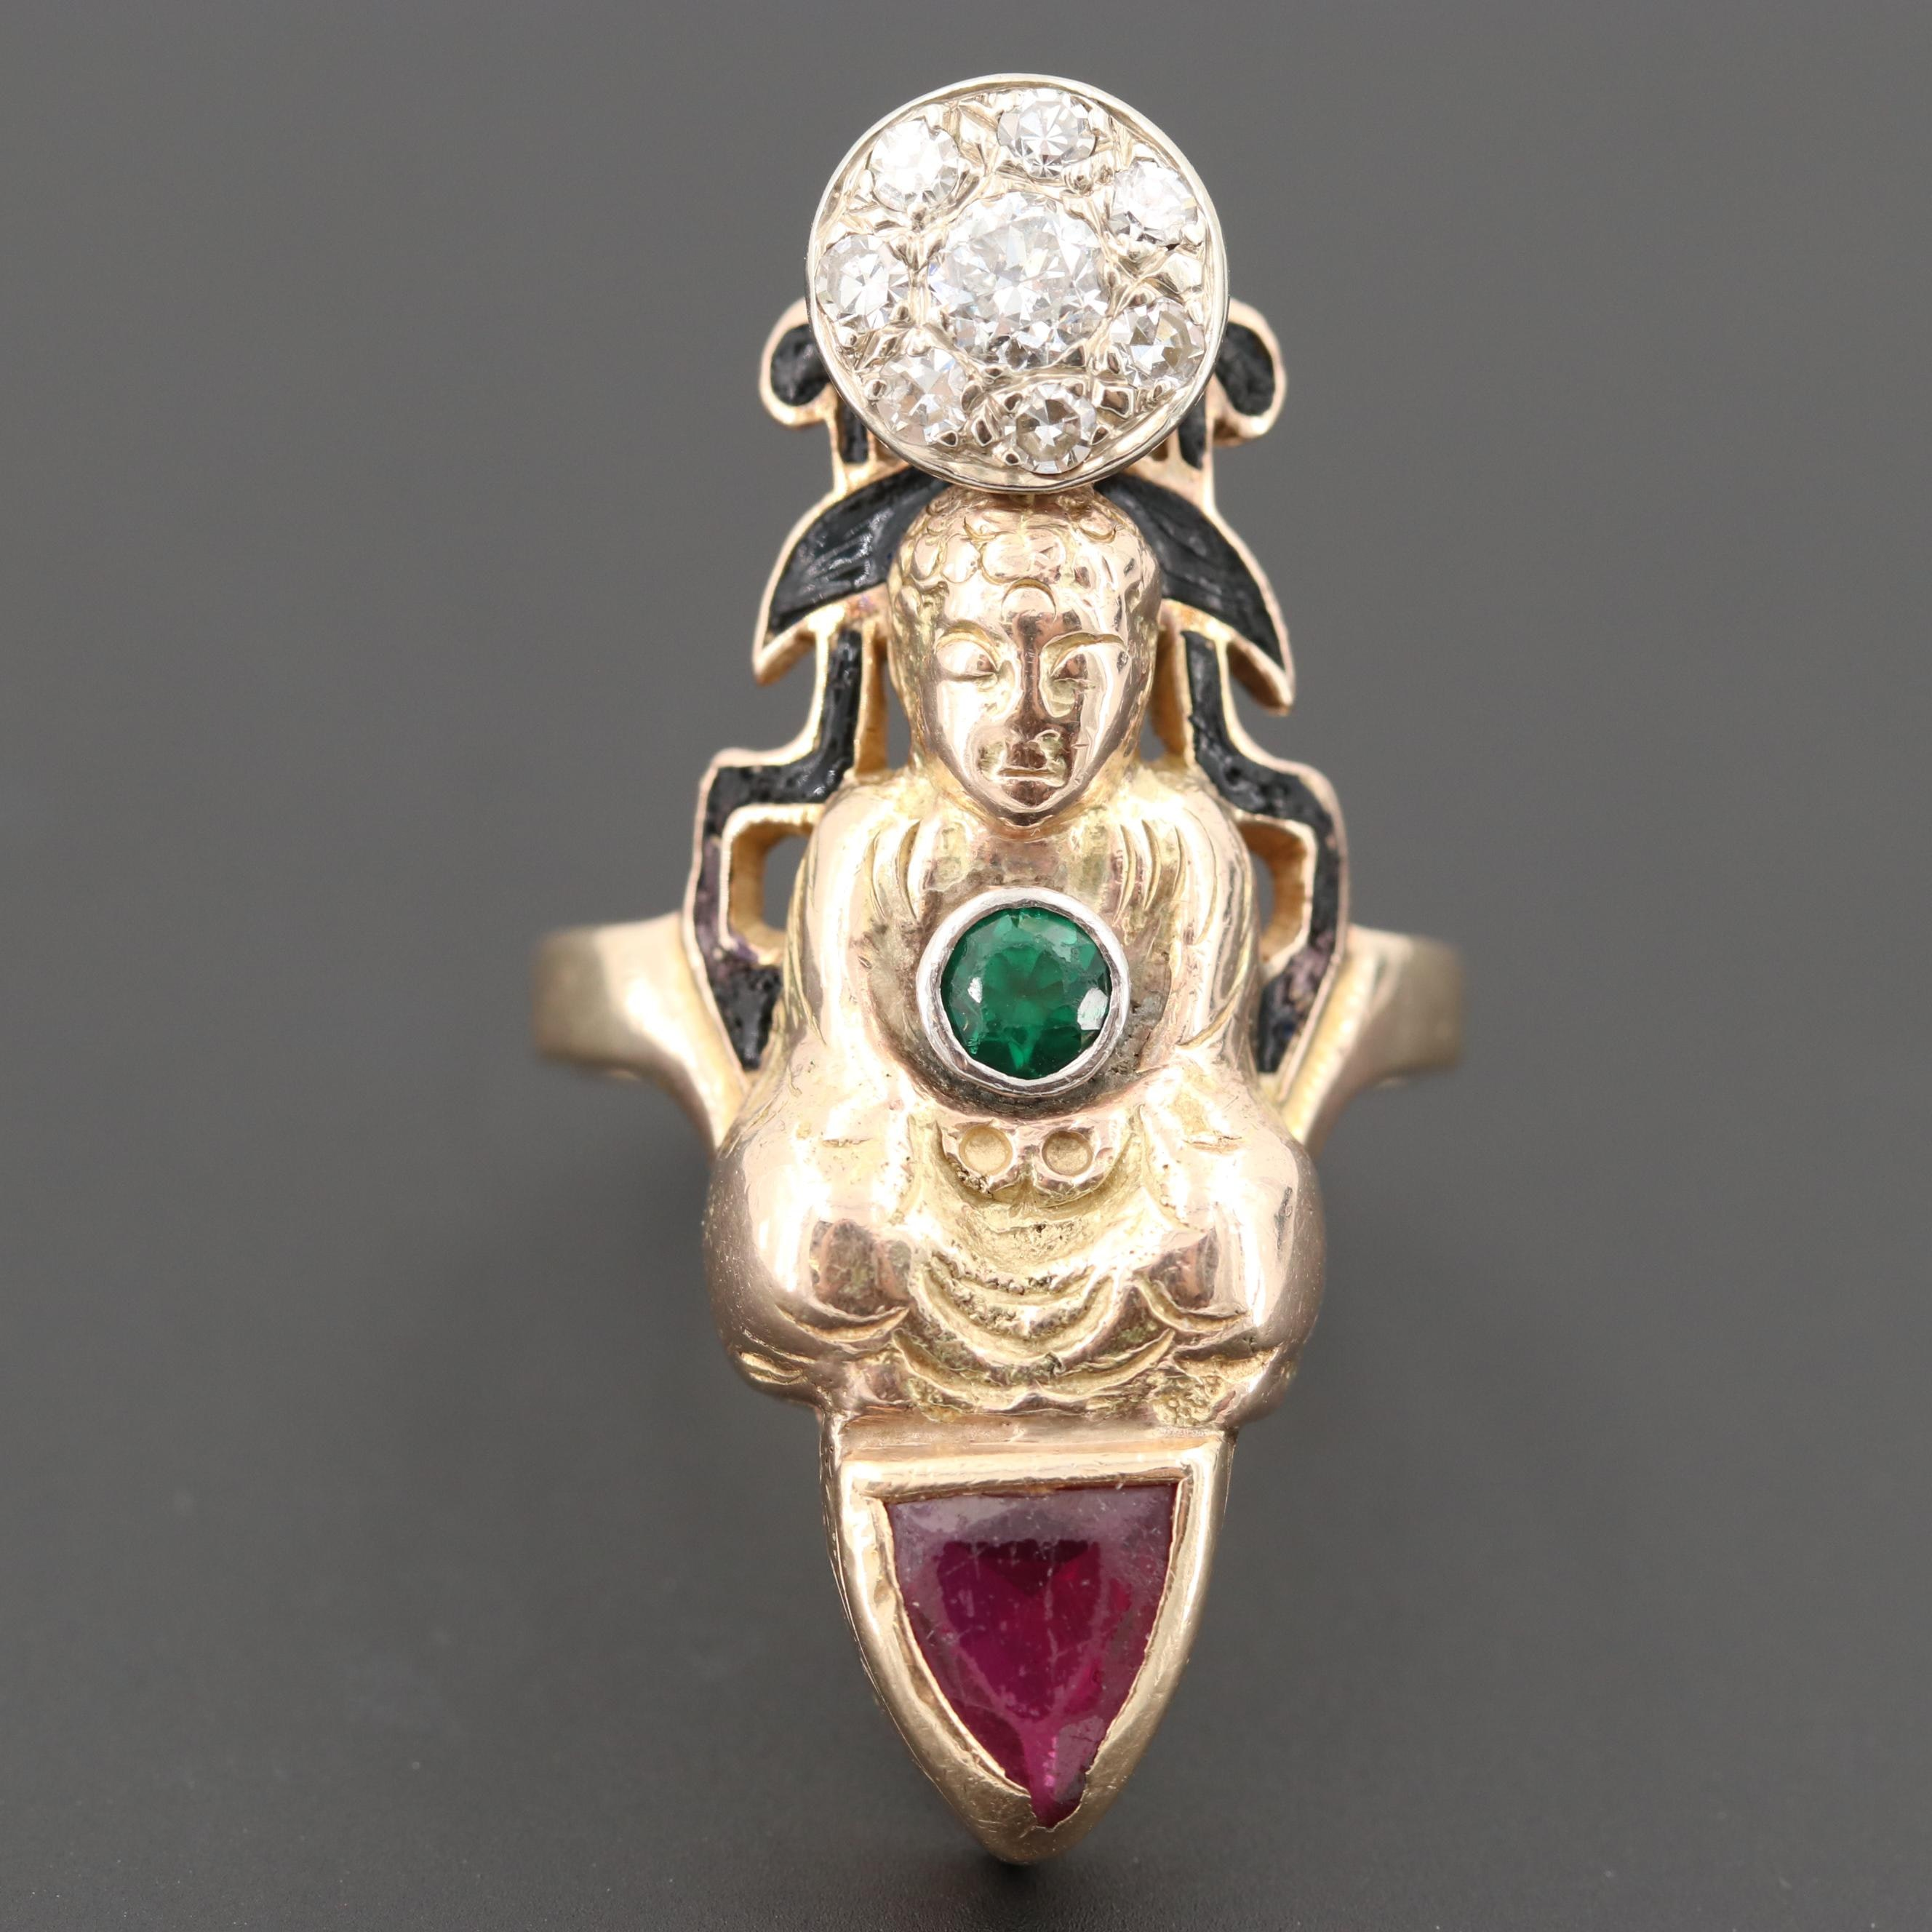 Vintage 10K Gold Synthetic Ruby, Synthetic Spinel and Diamond Buddha Motif Ring